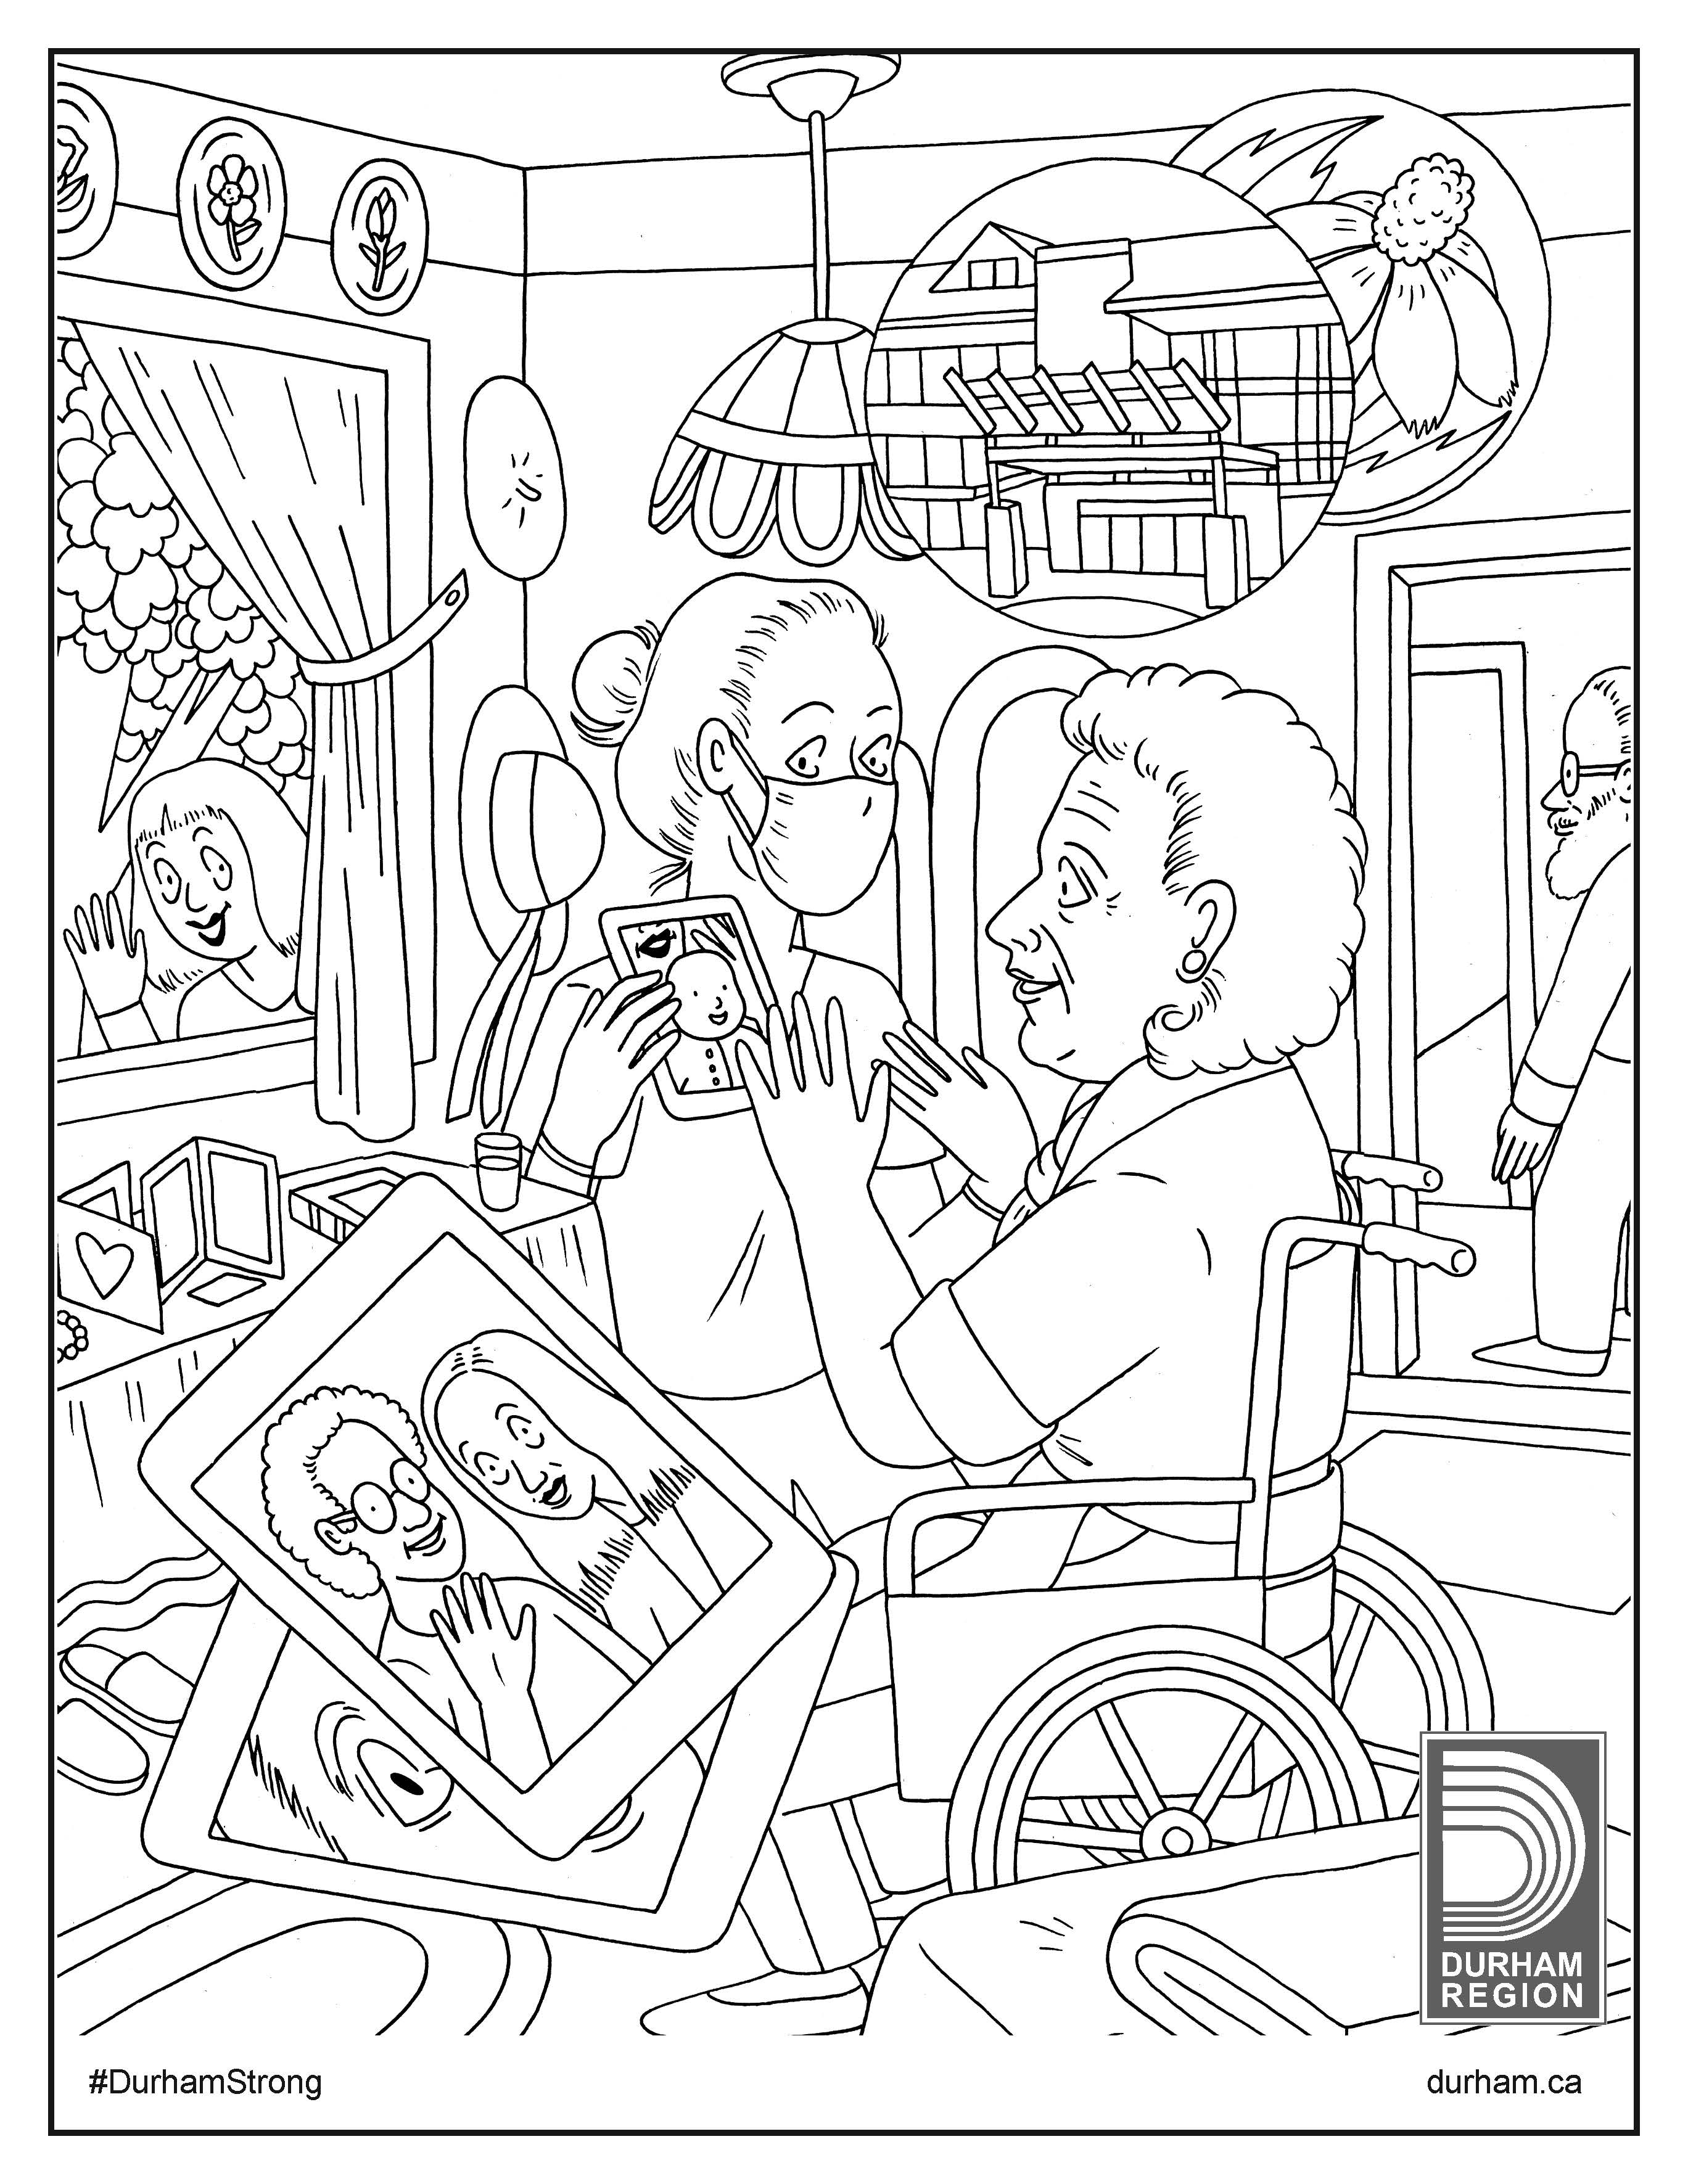 Illustration of a caregiver and resident at a long-term care home